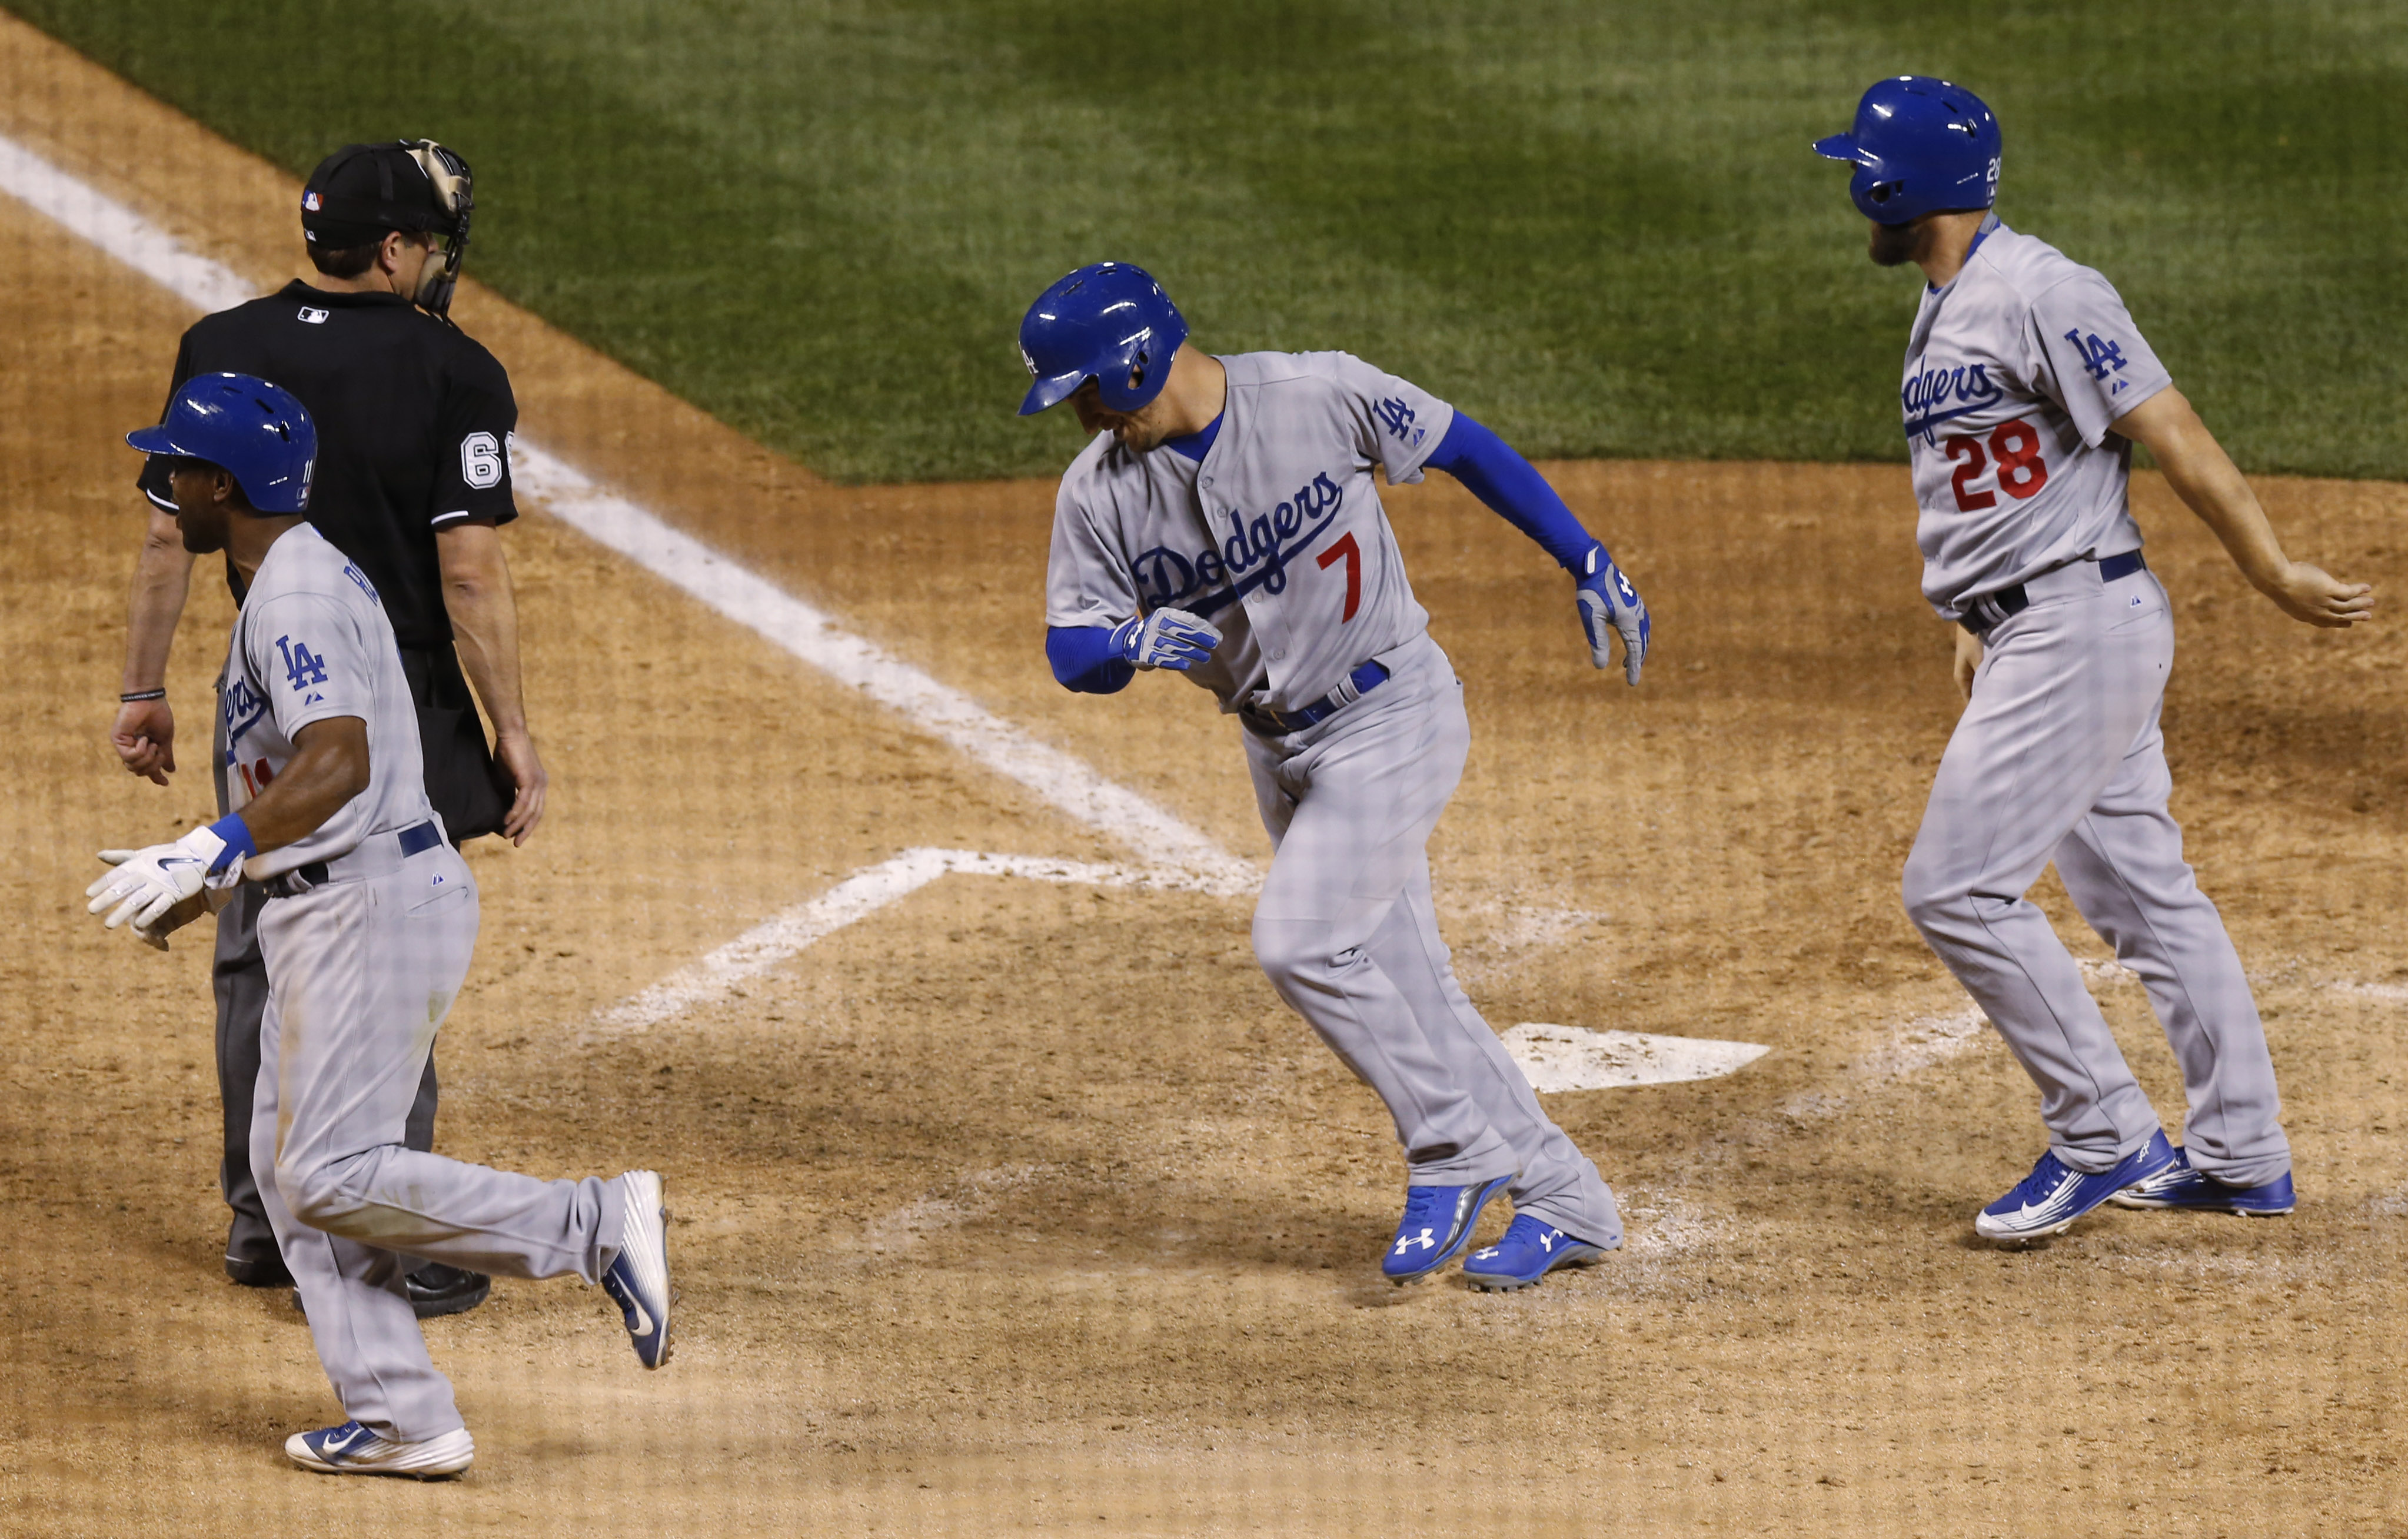 Los Angeles Dodgers' Alex Guerrero, center, celebrates his grand slam with teammates Jimmy Rollins, left, and Chris Heisey in the ninth inning off Colorado Rockies relief pitcher Rafael Betancourt in Game 2 of a baseball doubleheader Tuesday, June 2, 2015